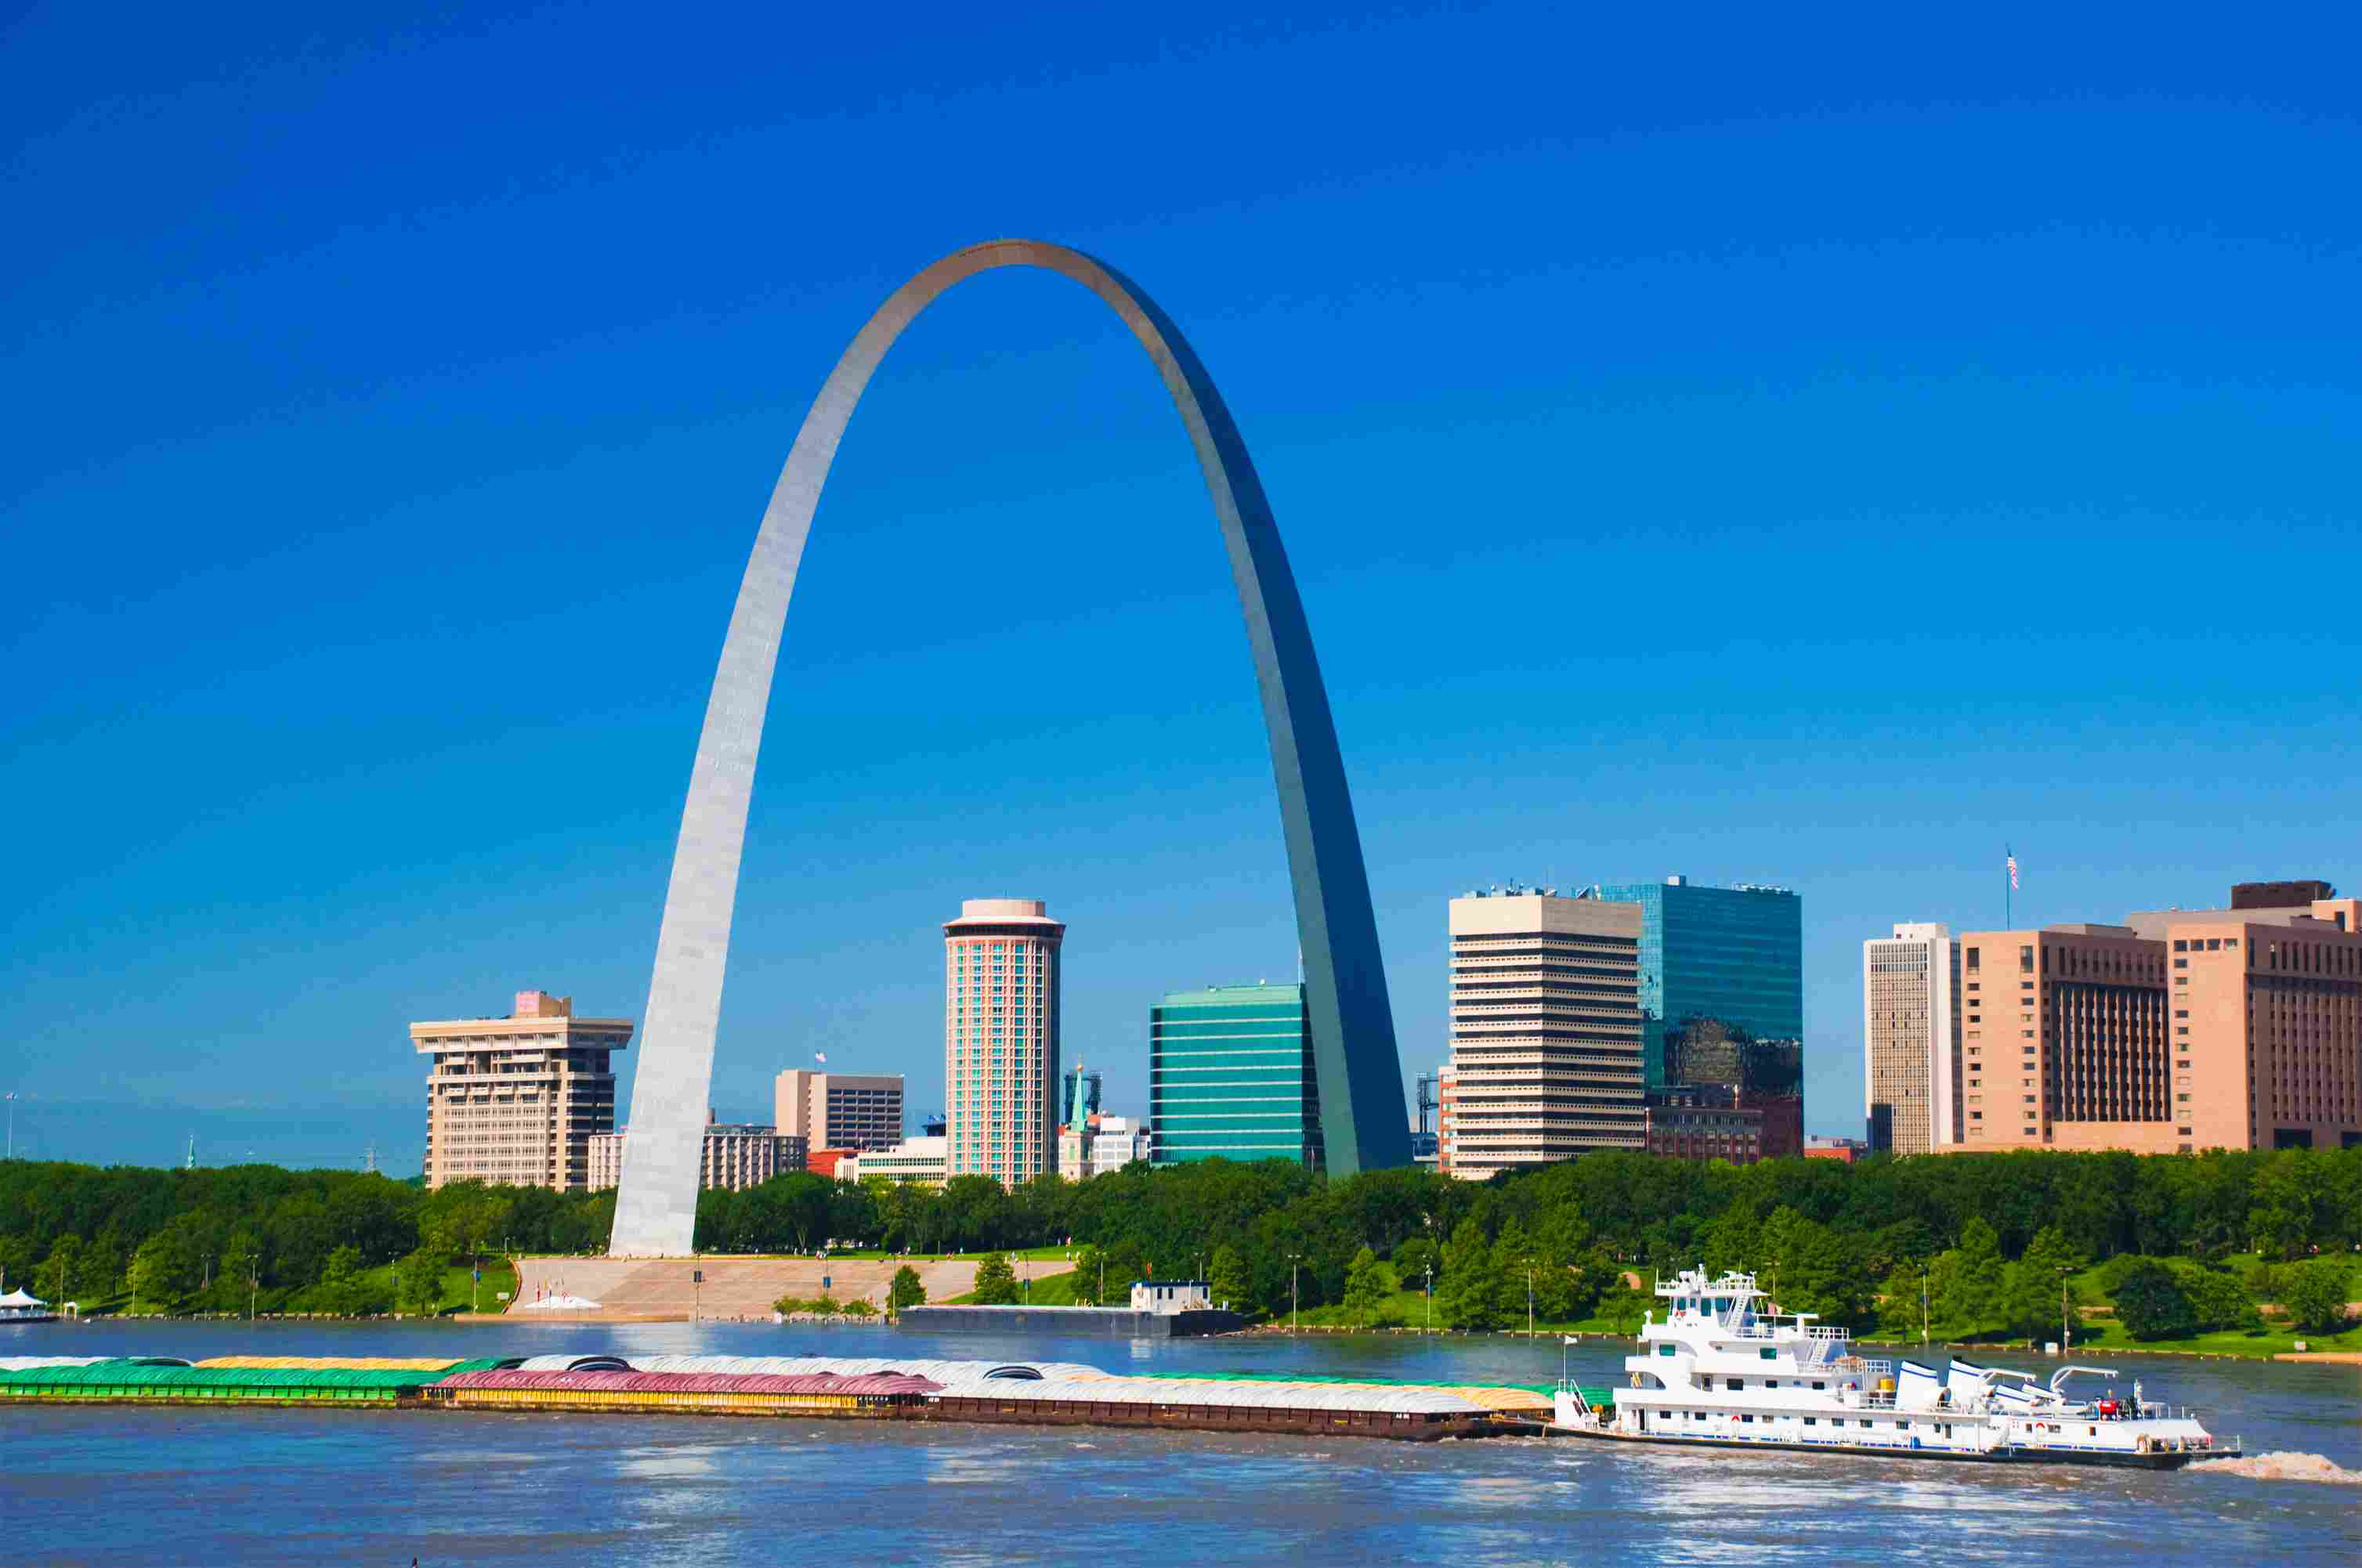 St. Louis skyline, arch, river, and boat